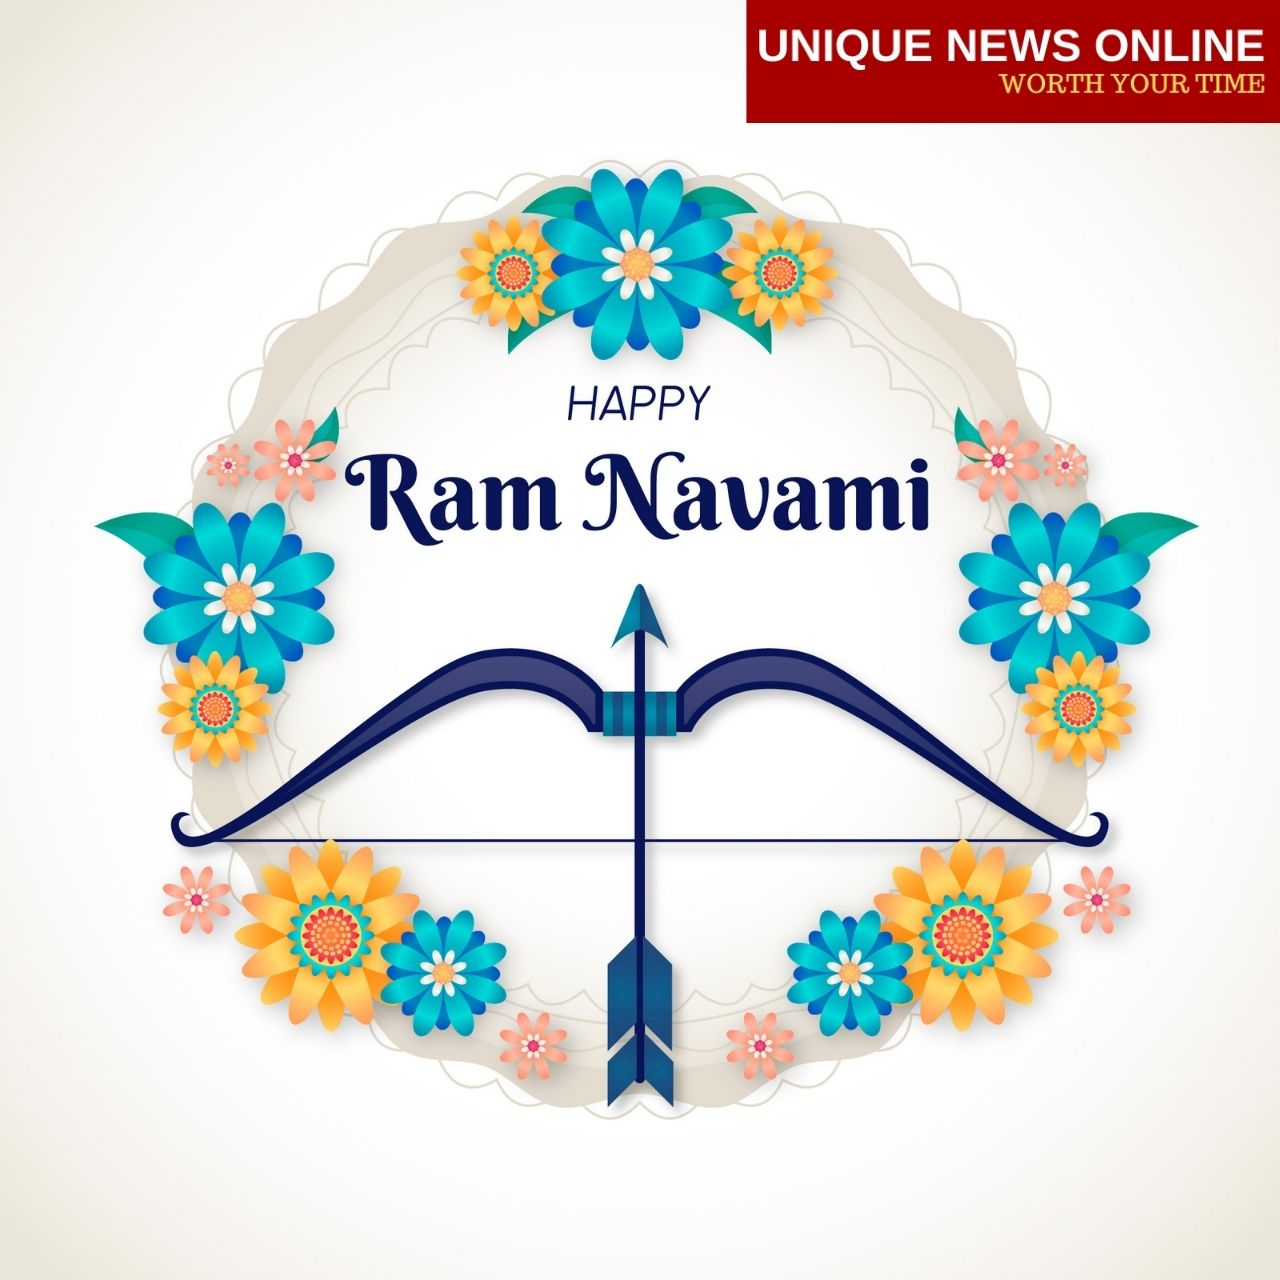 Happy Ram Navami 2021 Wishes, Messages, Quotes, WhatsApp Status, Images, and Greetings to Share